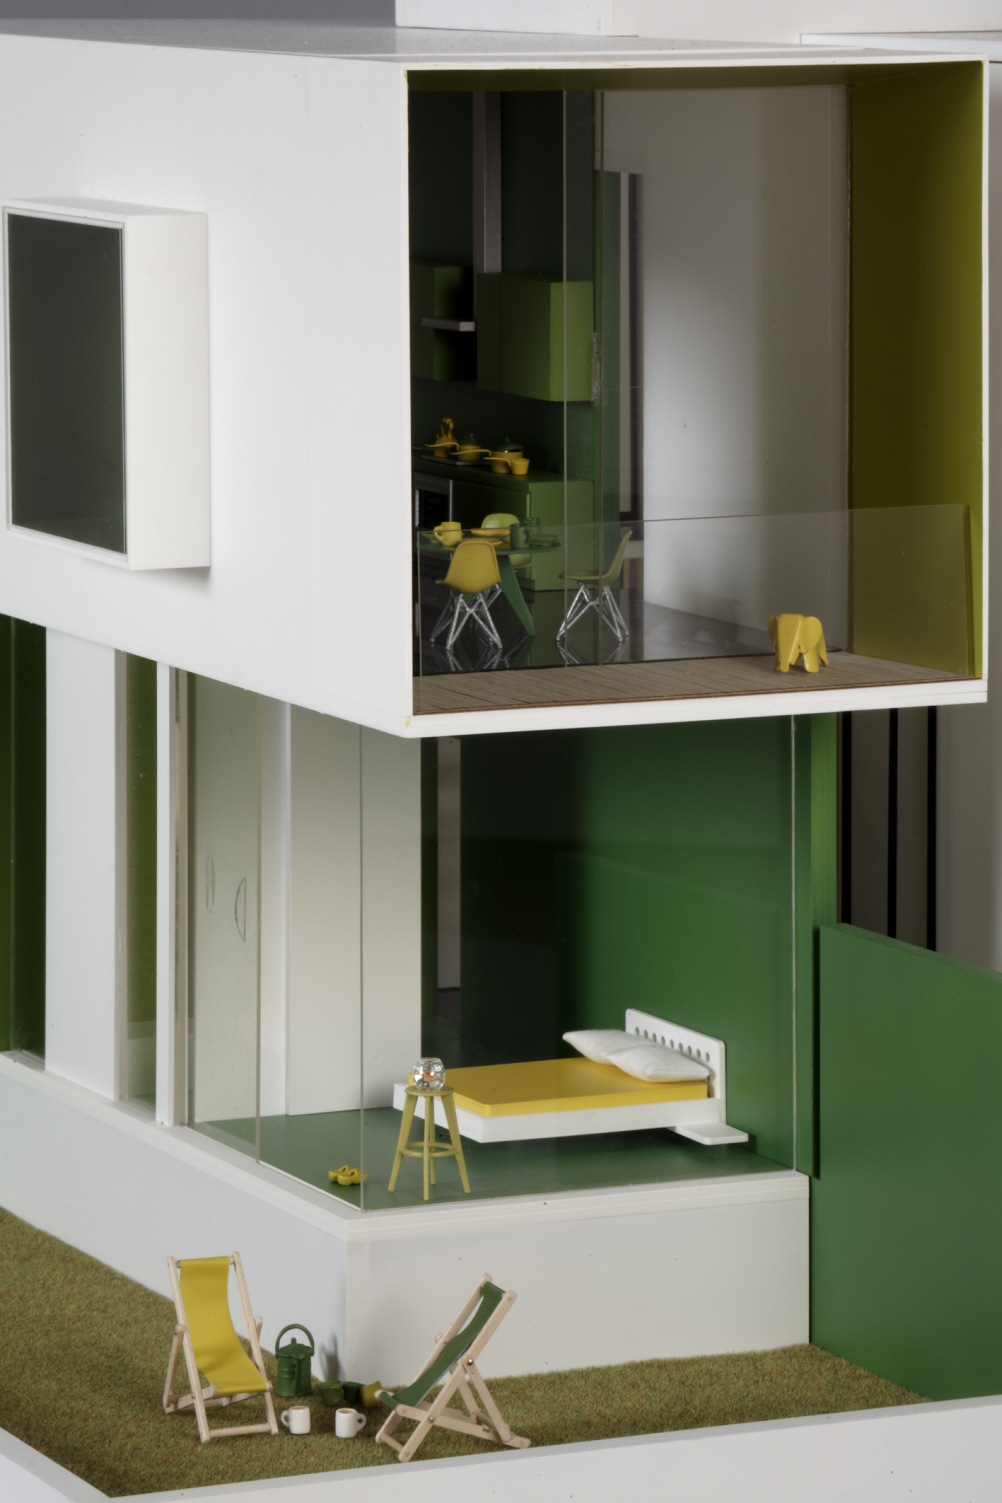 Detail of AHMM's dolls' house